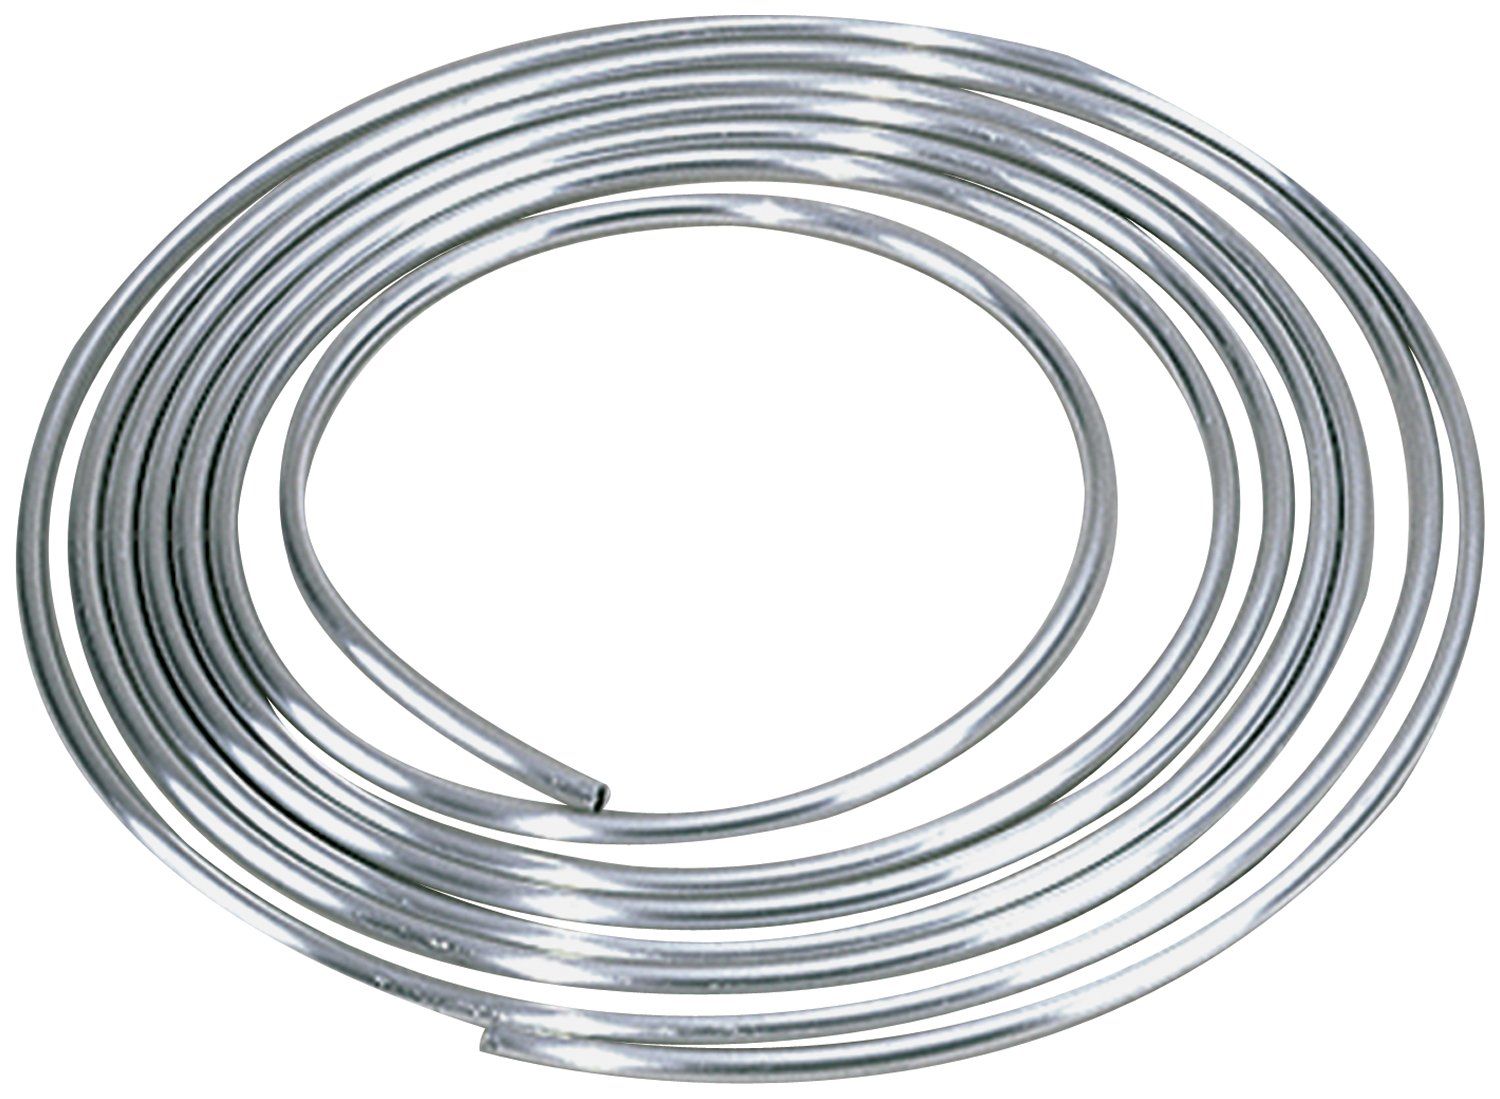 Allstar ALL40180 3/8'' Diameter 25' Aluminum Coiled Tubing Fuel Line